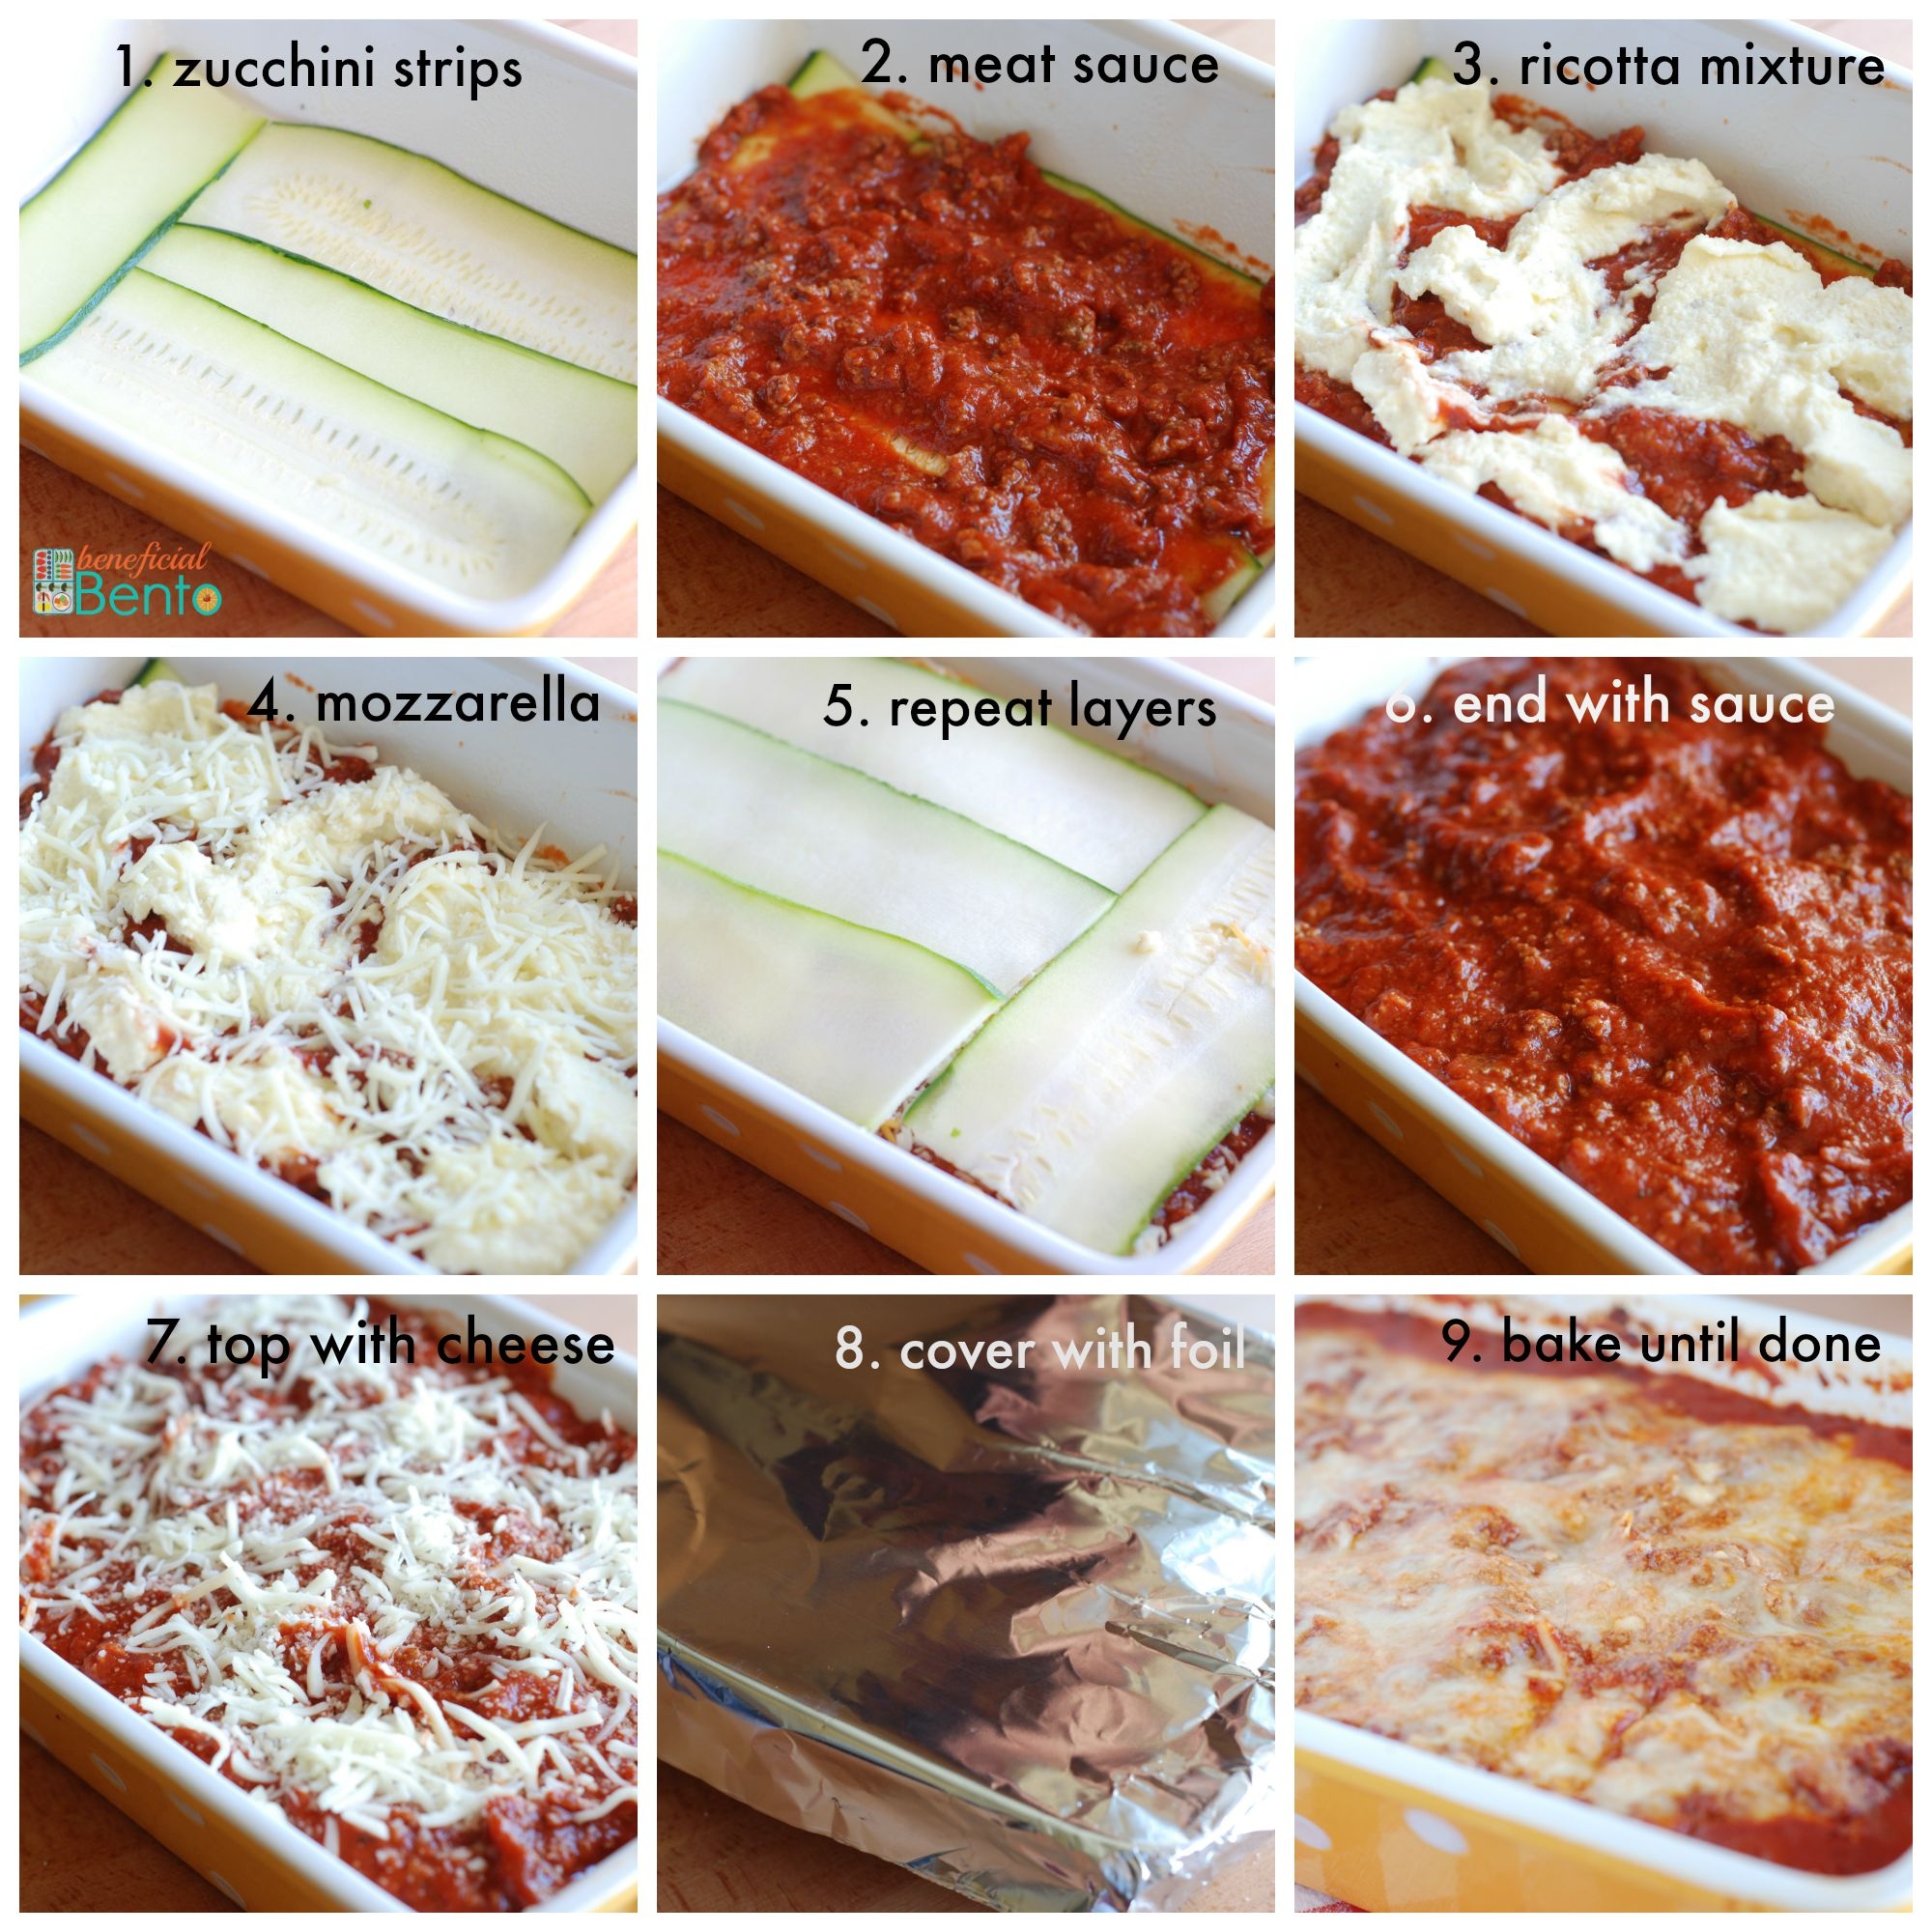 Low Carb Zucchini Lasagna Beneficial Bento